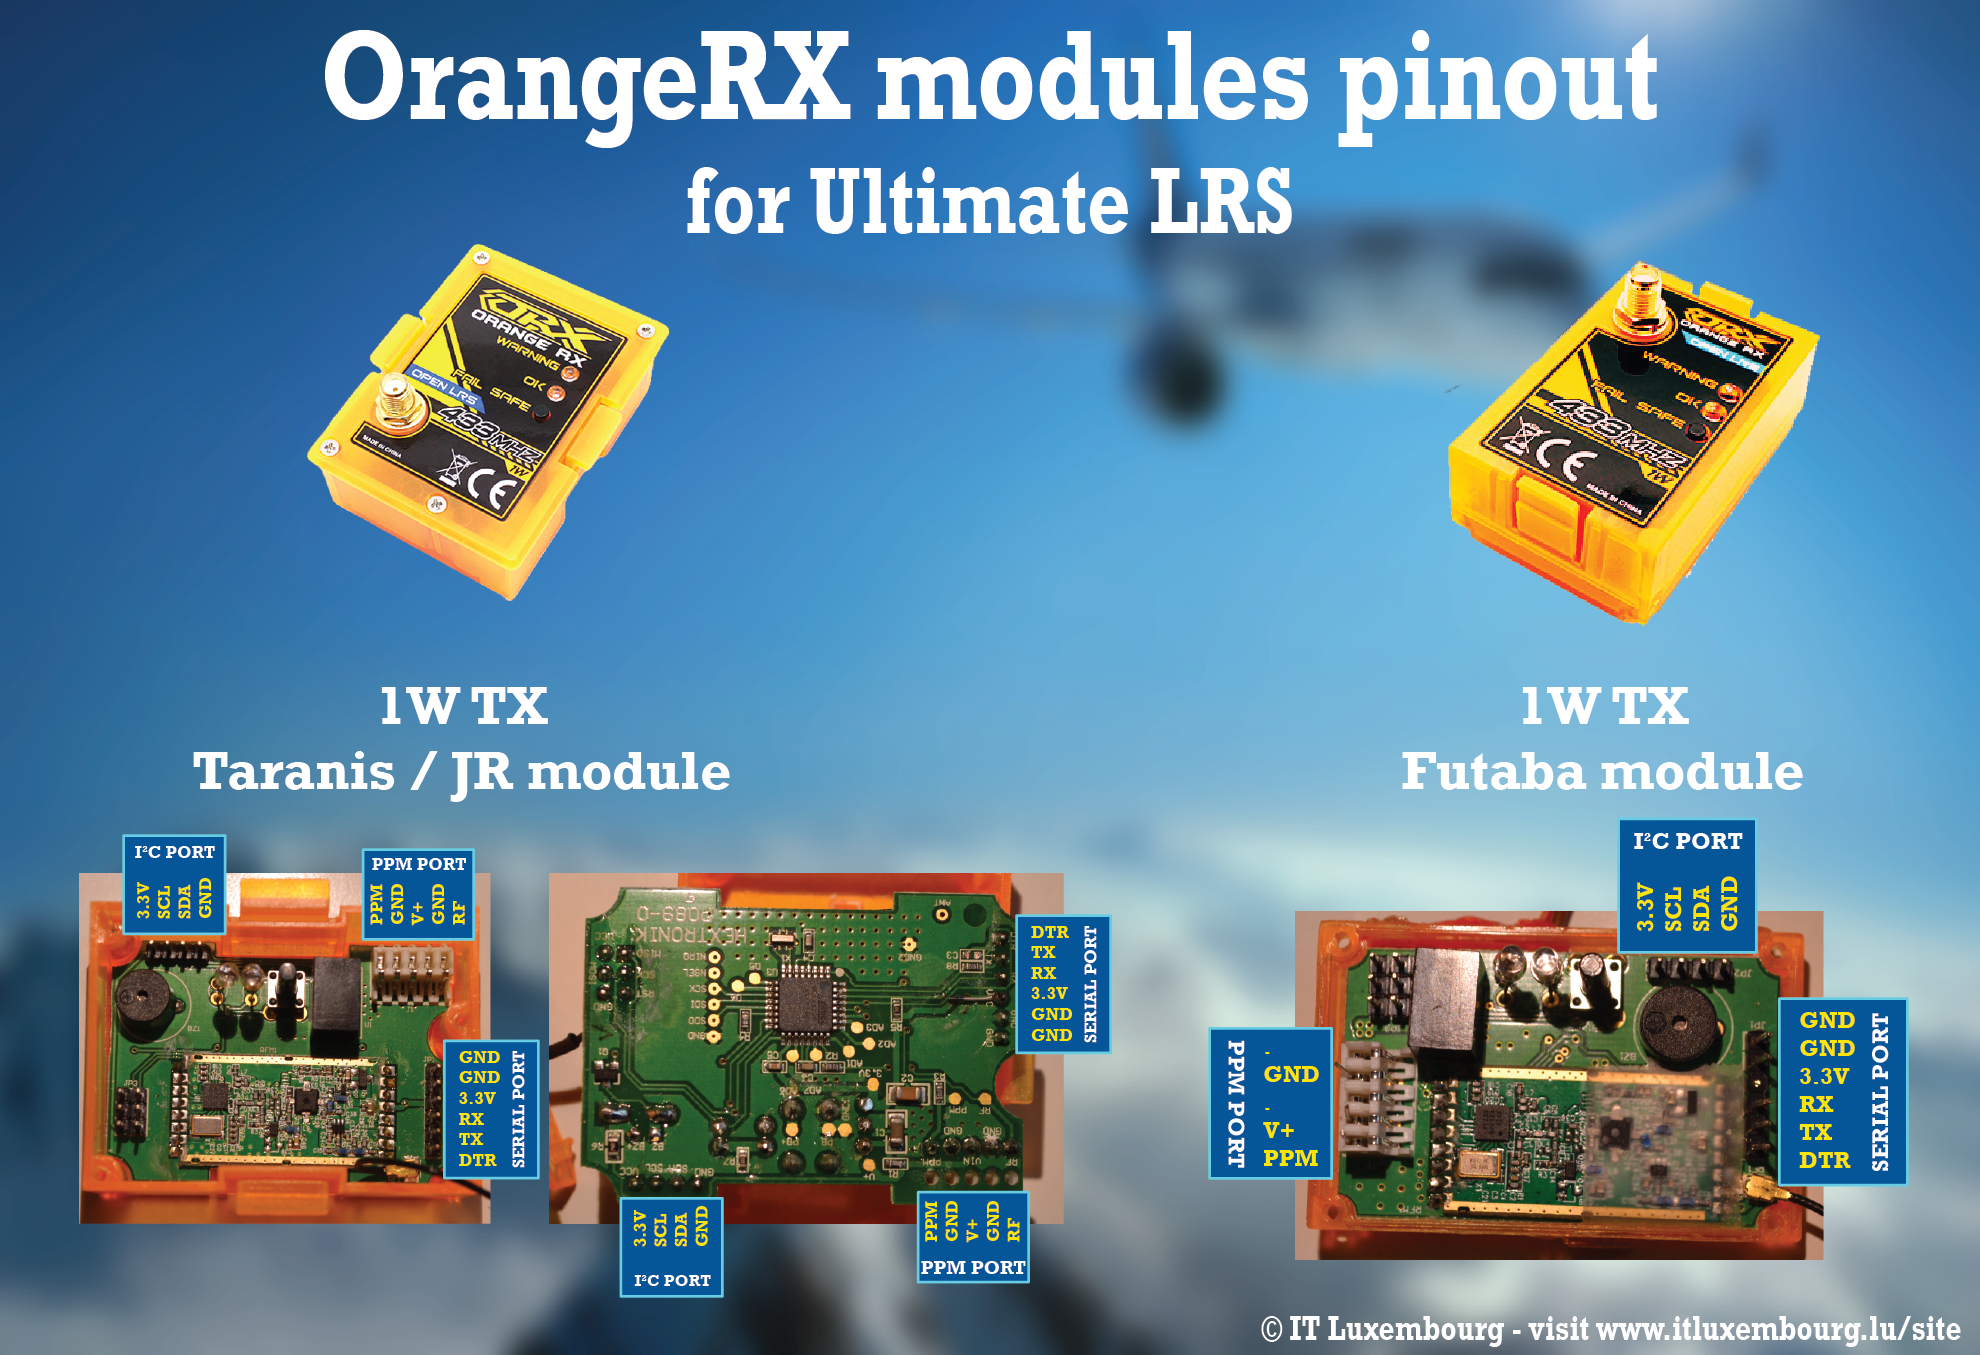 orangerx pinout hobbyking orangerx 433mhz modules faq it luxembourg  at alyssarenee.co